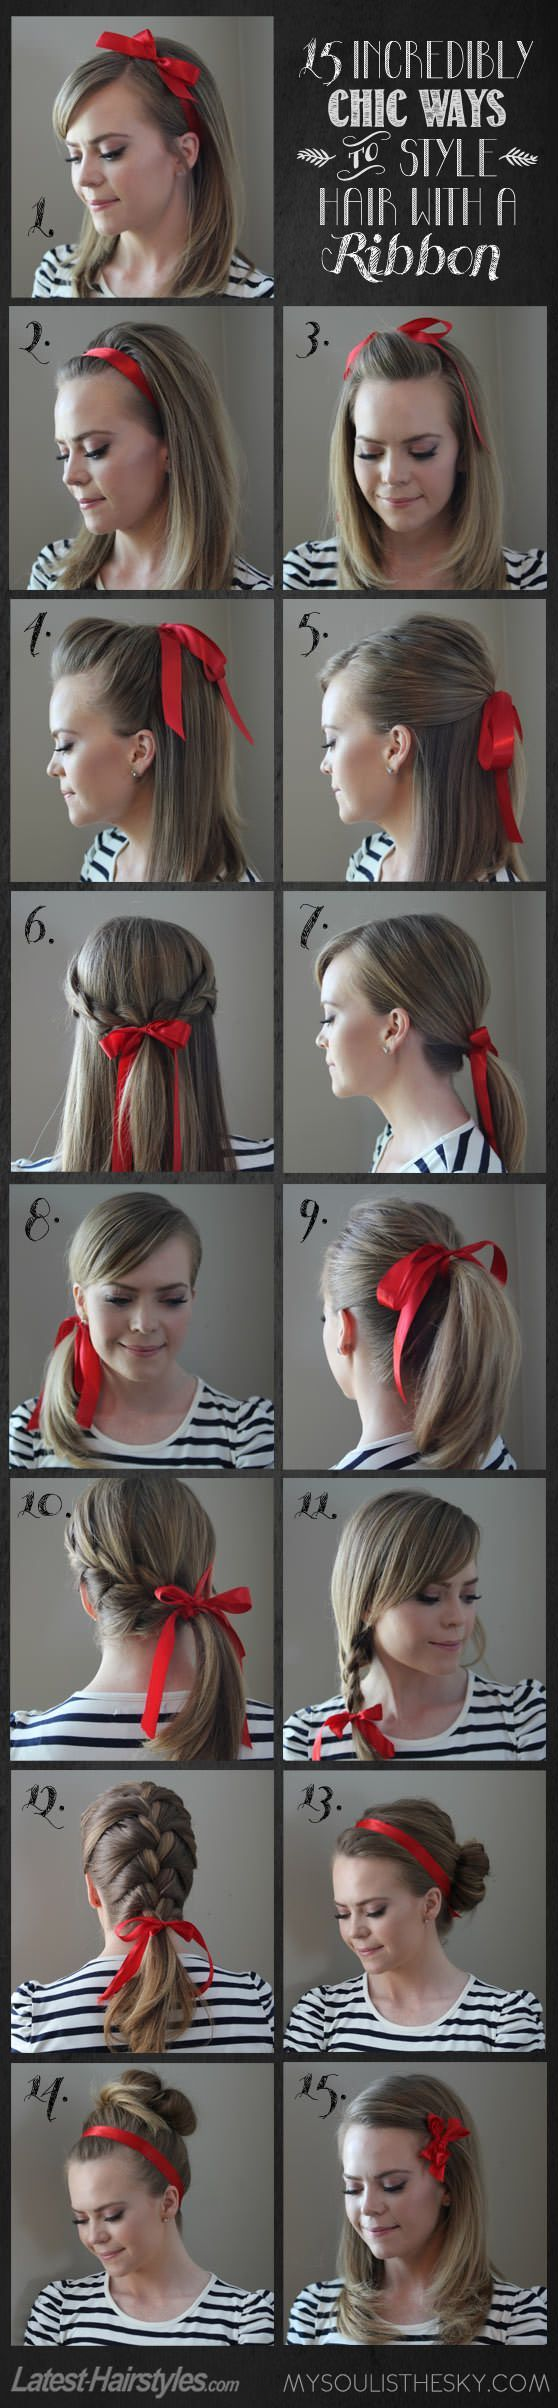 I am not crazy about the colors but i love the hairstyles | Fashion Beauty MIX